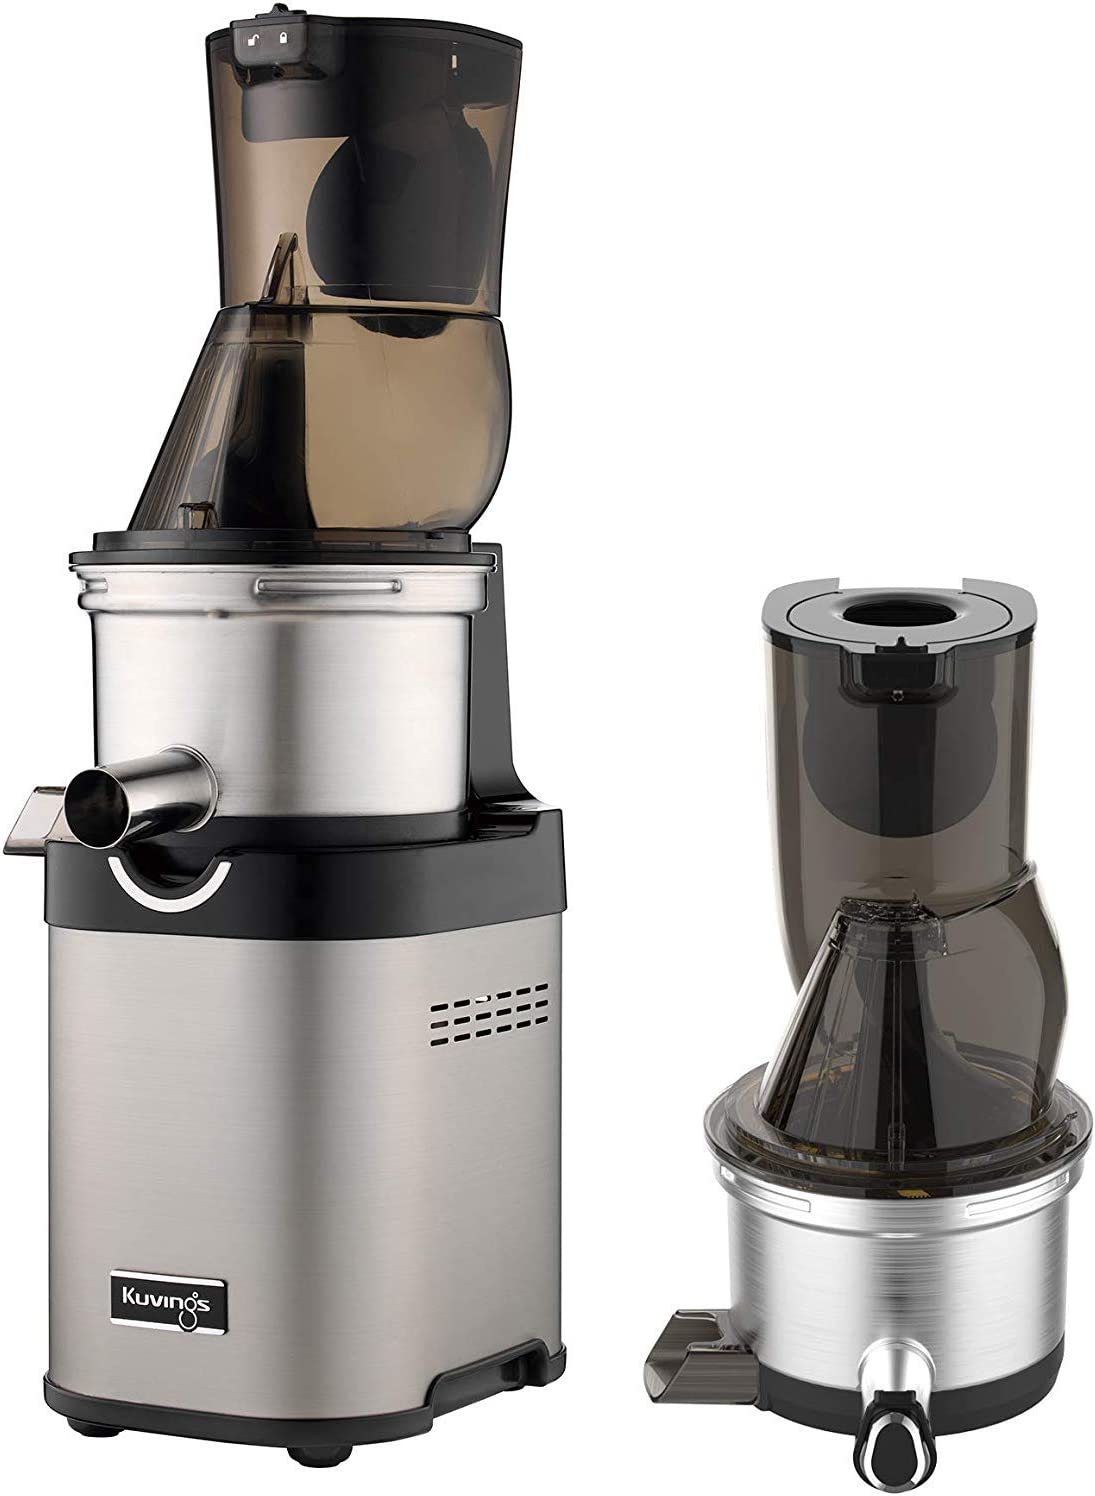 61ChCtFEc4L. AC SL1500 The Best Kuvings Juicers to Buy 2021 [Reviewed & Compared]